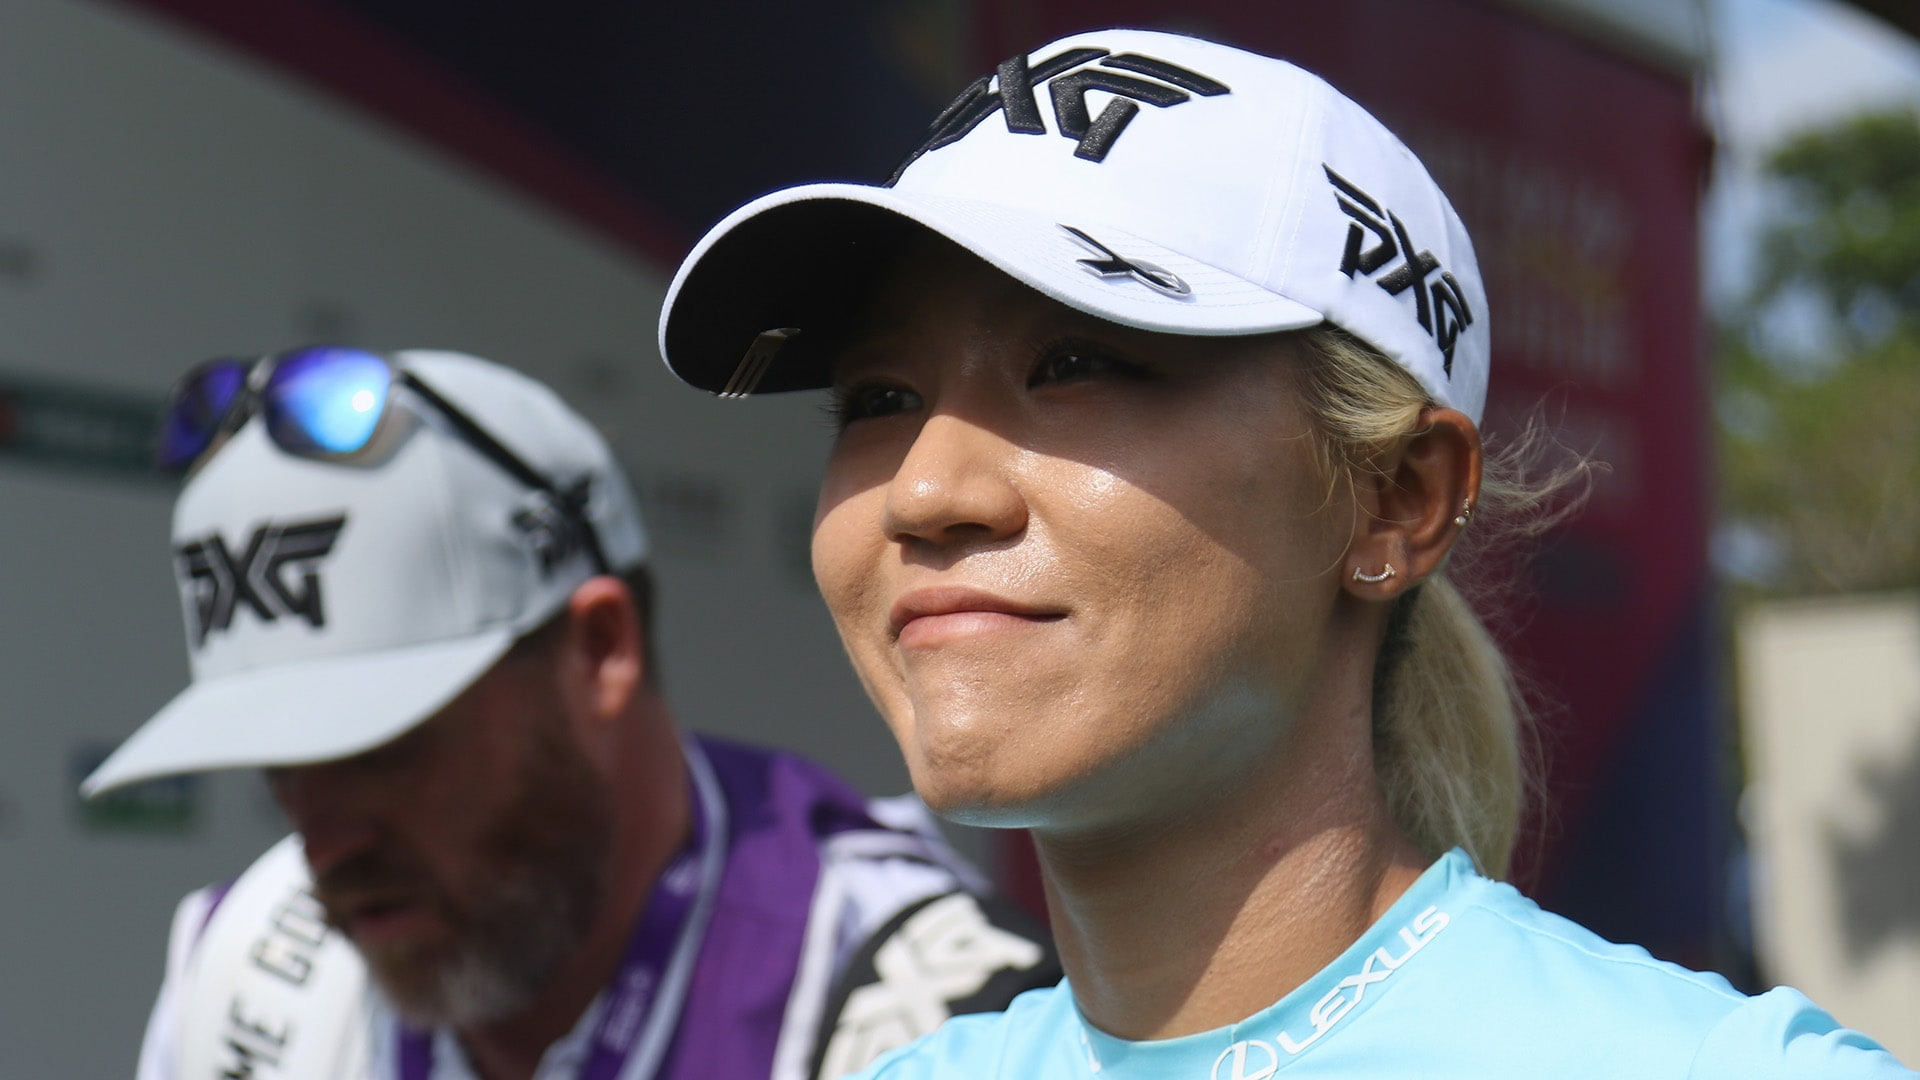 Lydia Ko at the 2018 Swinging Skirts LPGA Taiwan Championship